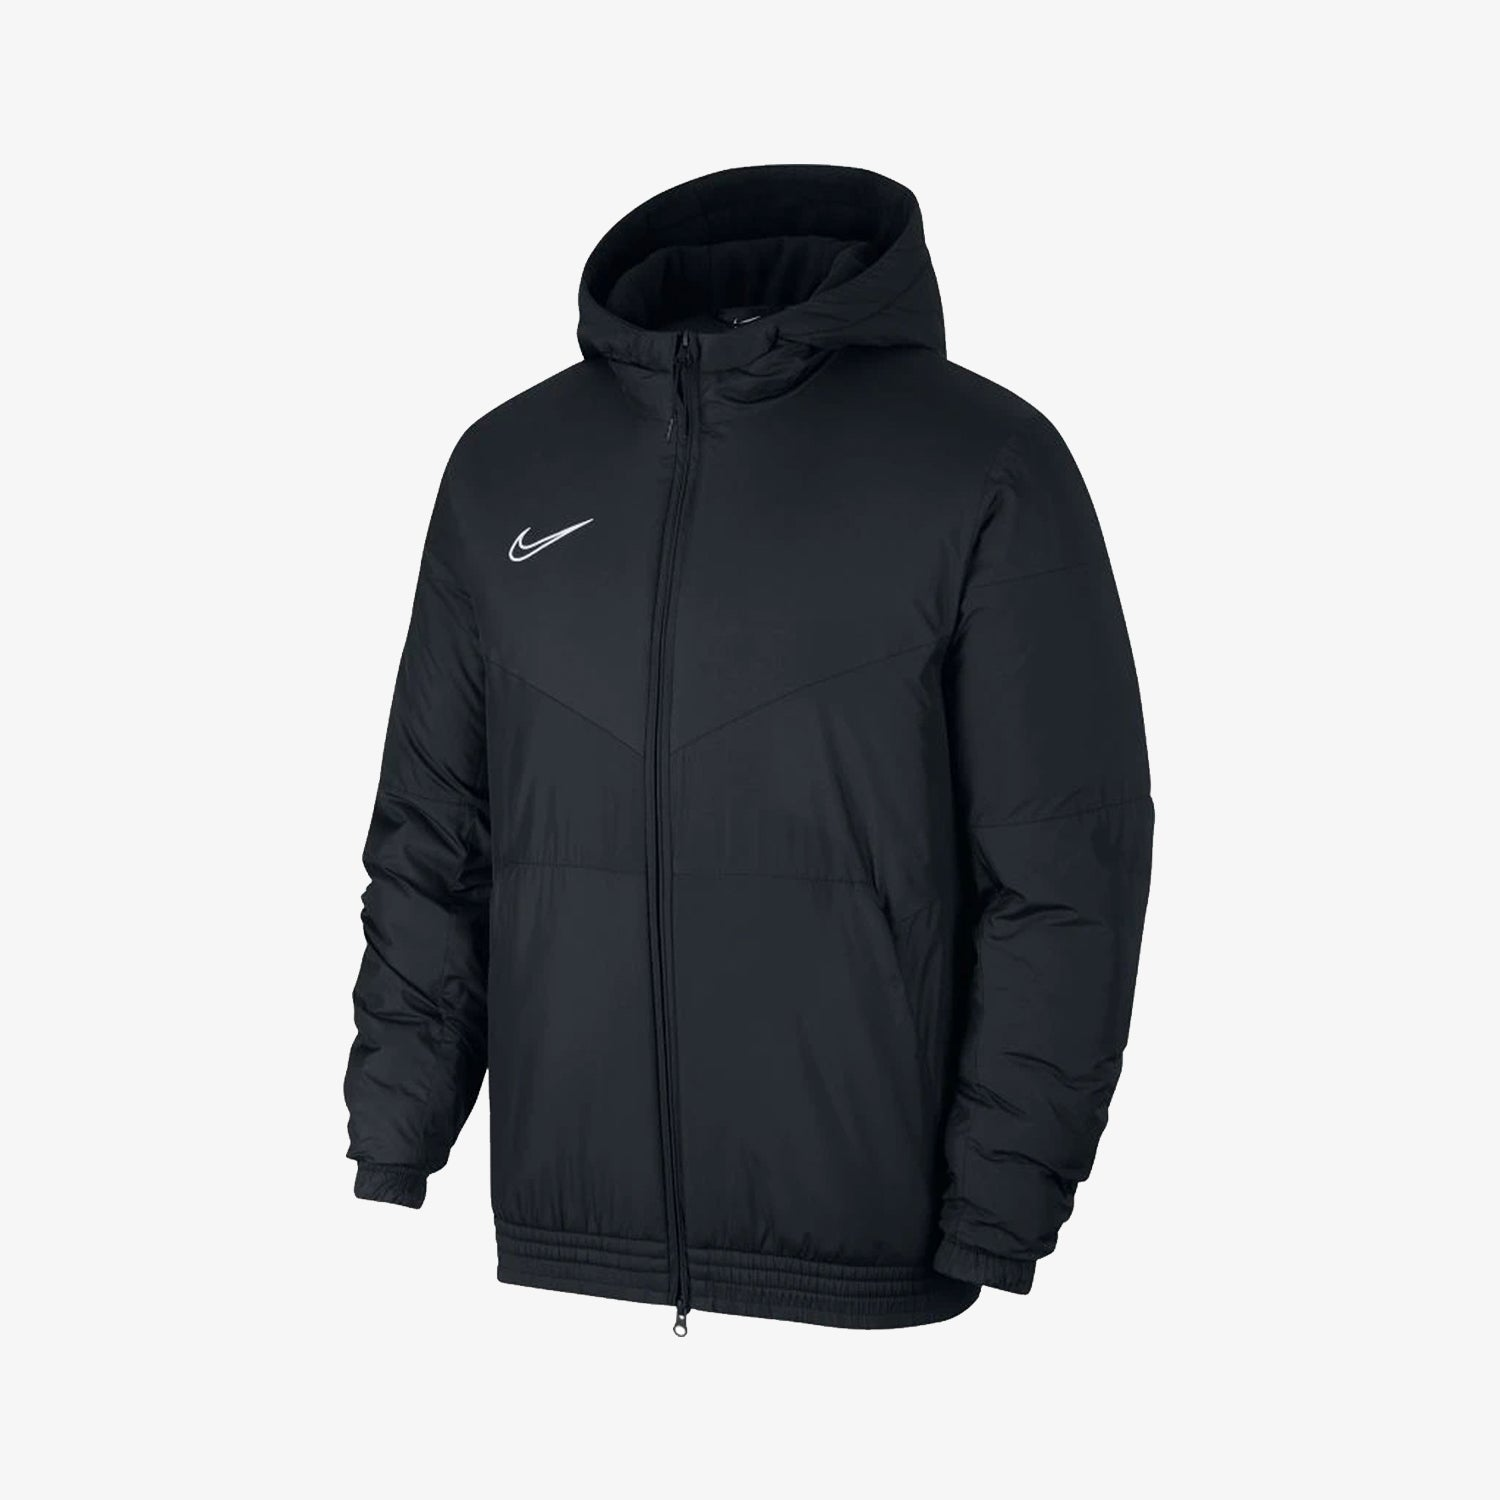 Women's Academy 19 Stadium Jacket - Black